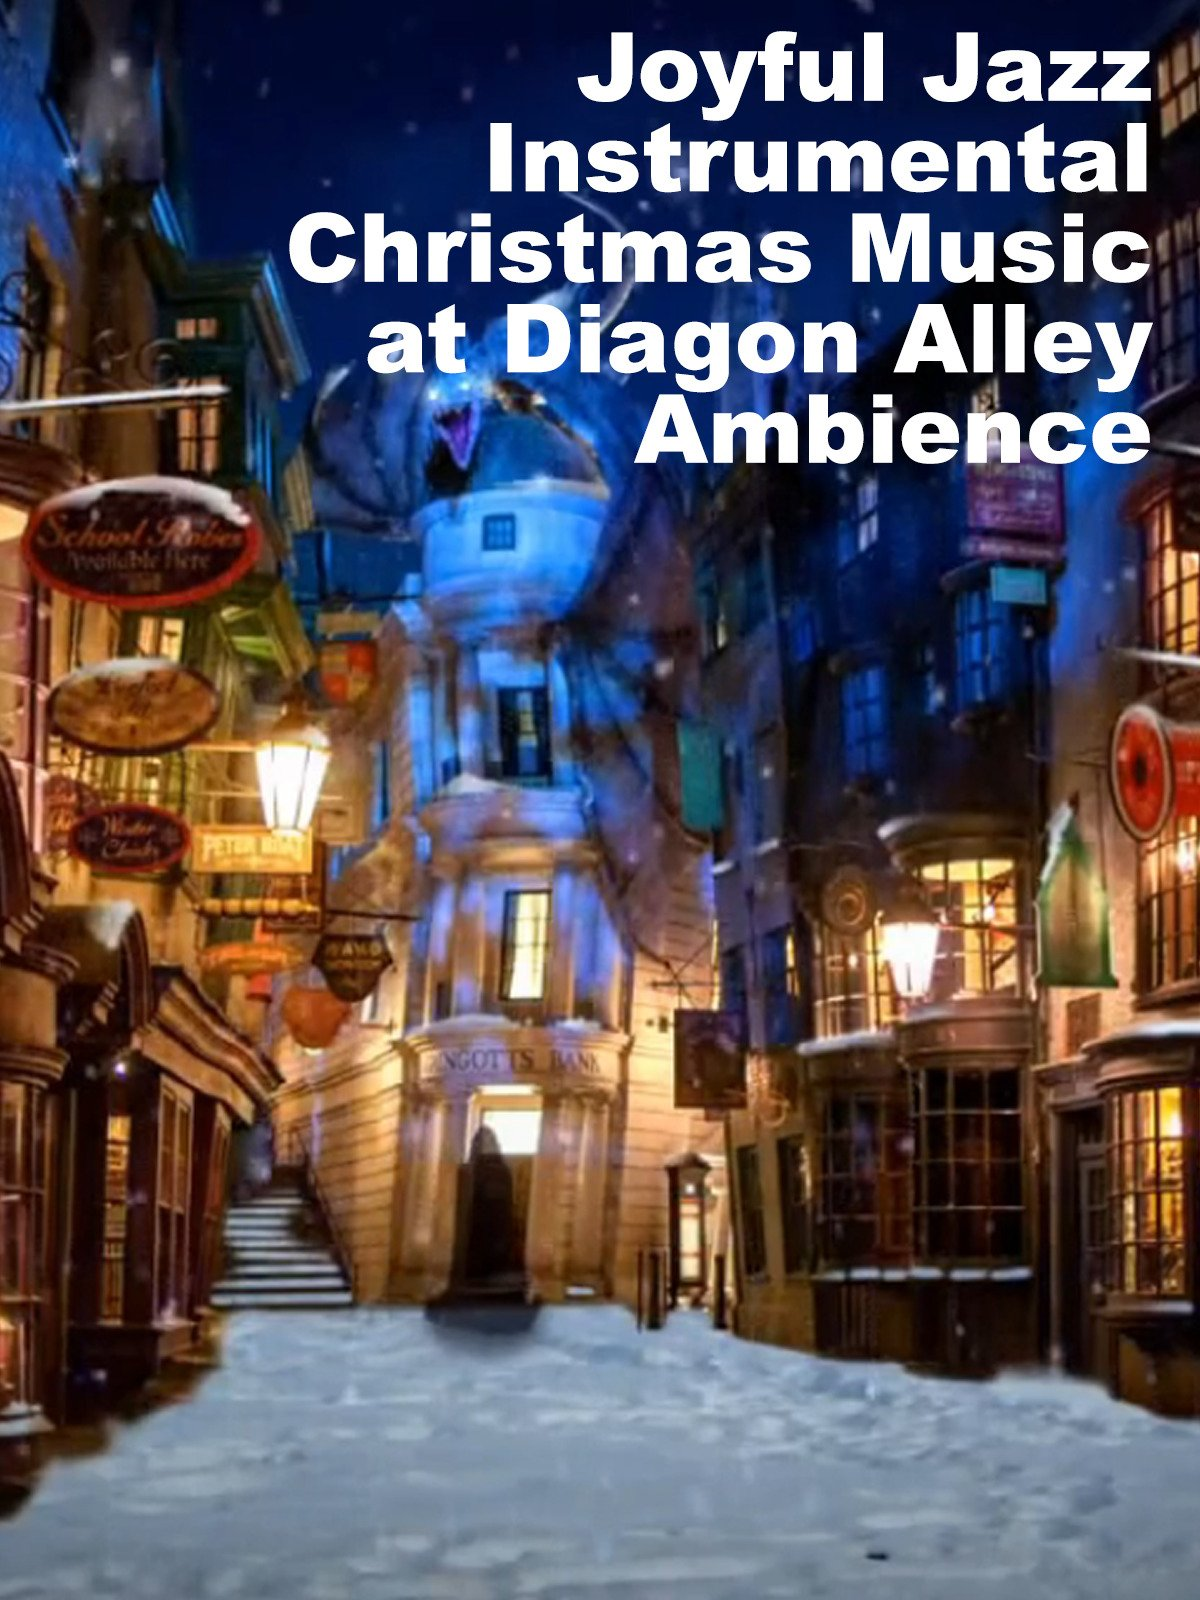 Joyful Jazz Instrumental Christmas Music at Diagon Alley Ambience